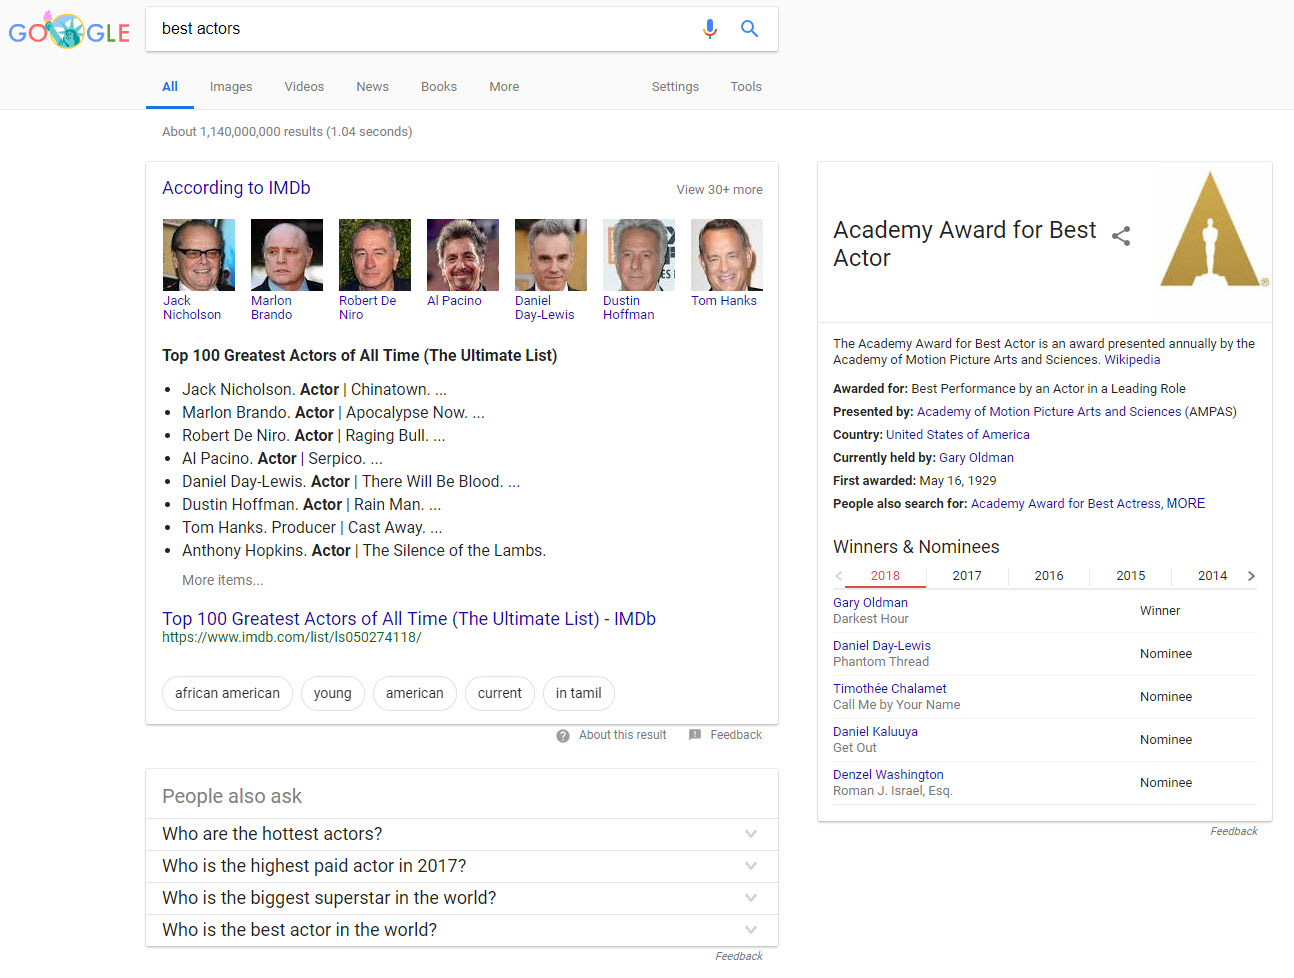 Best Actor - Featured Snippet and Carousel